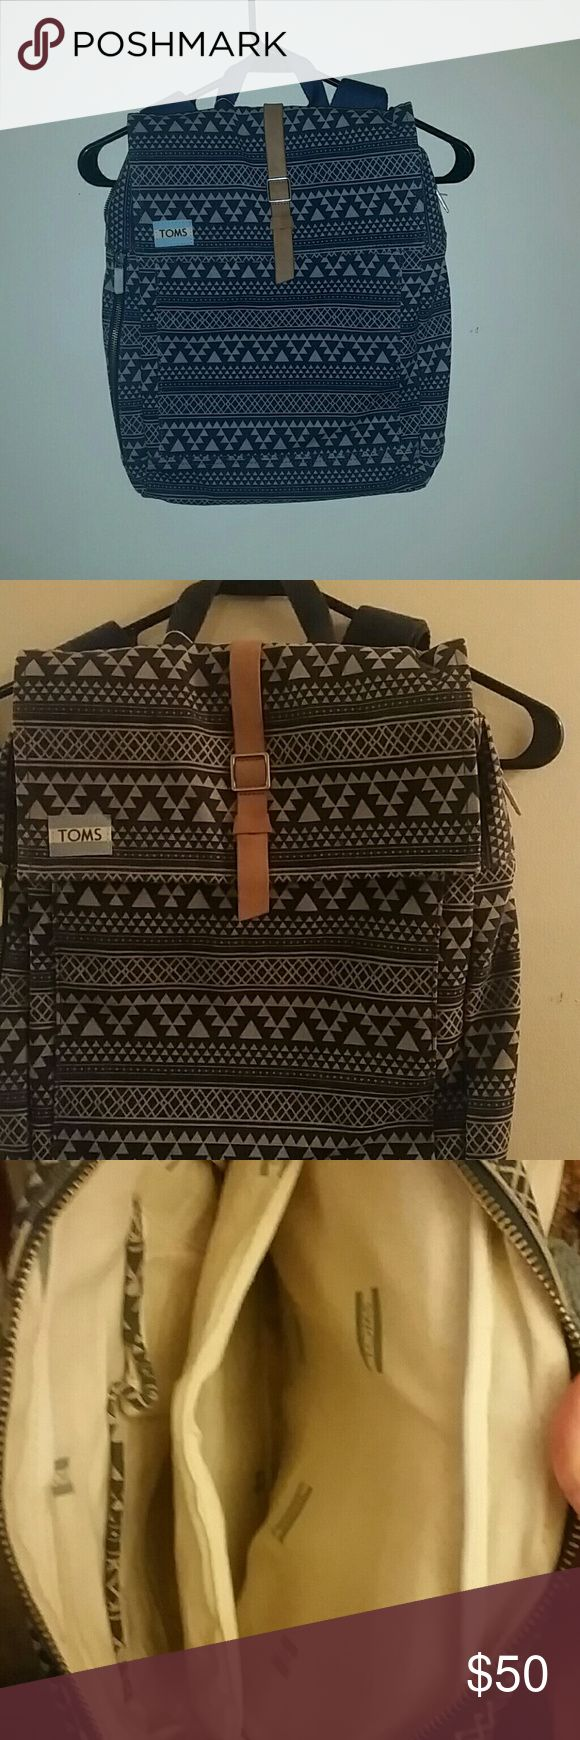 TOMS Backpack Start the new year off right with a brand new backpack, never been used! This backpack has a front pocket, magnetic clasp, 2 pockets inside with a pencil holder. TOMS Bags Backpacks